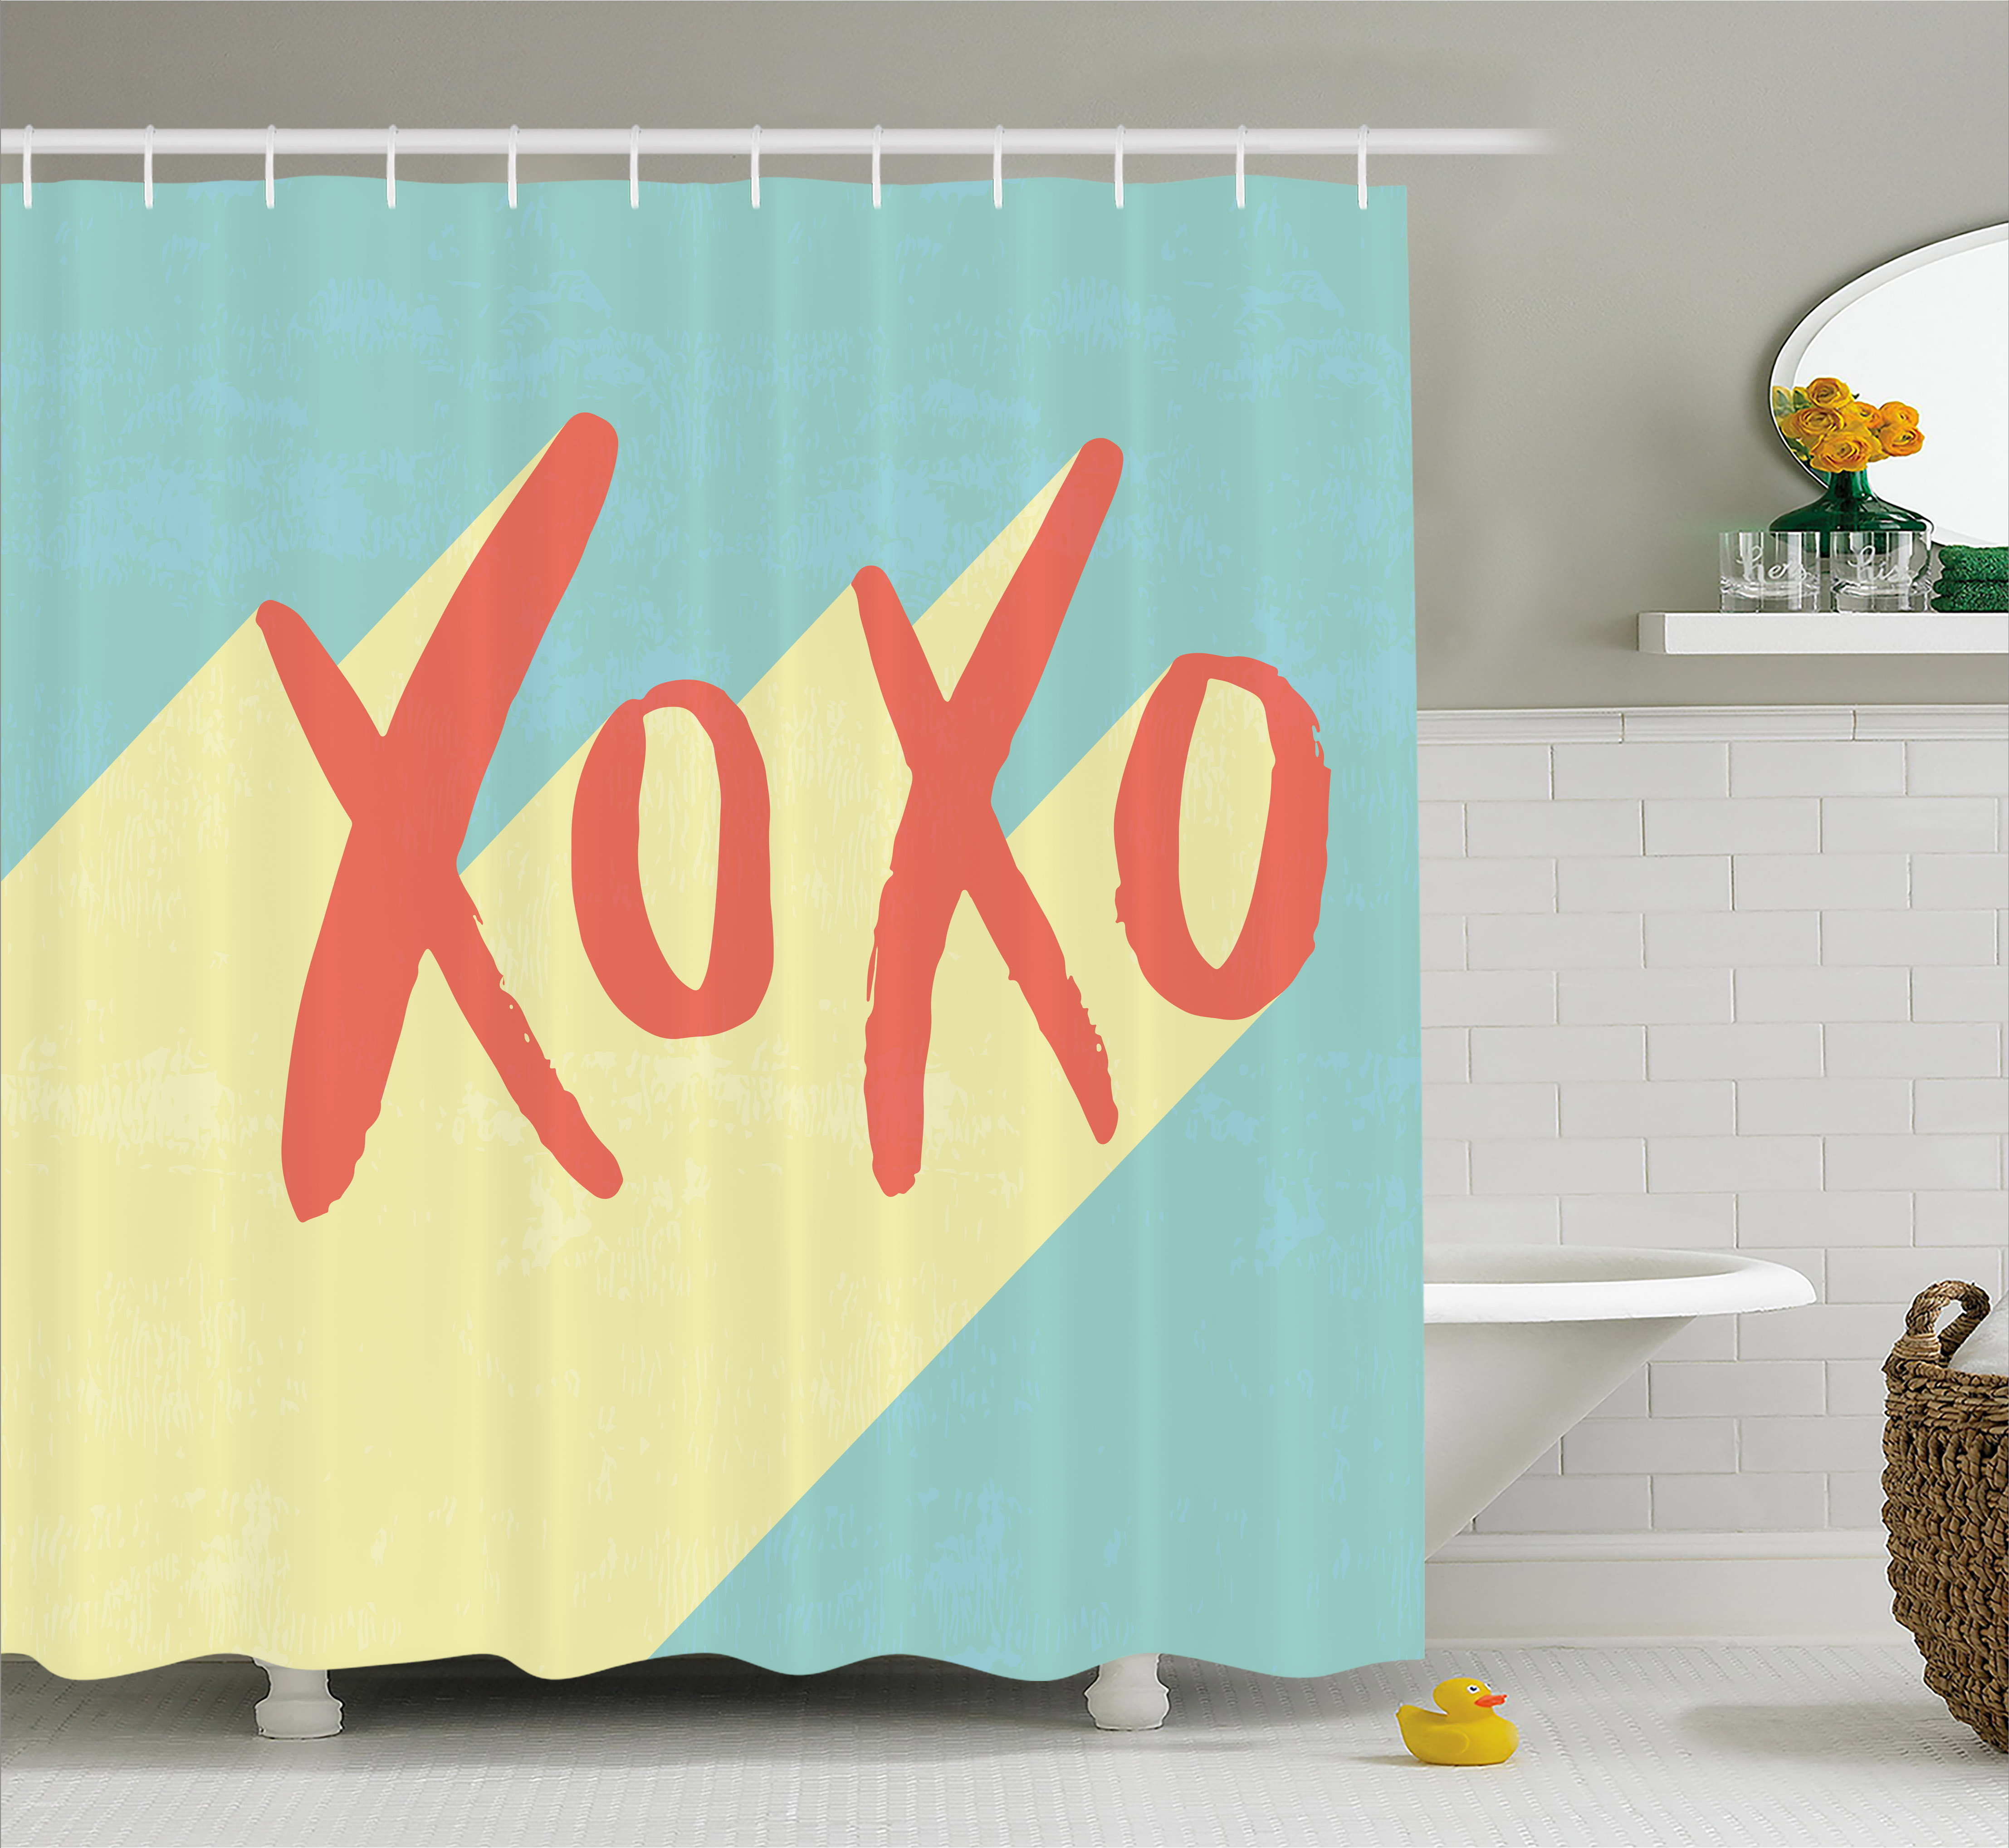 Xo Decor Shower Curtain, Pop Art Retro Hugs and Kisses Symbol on Vibrant Illustration, Fabric Bathroom Set with Hooks, 69W X 70L Inches, Turquoise Dark Coral Yellow, by Ambesonne